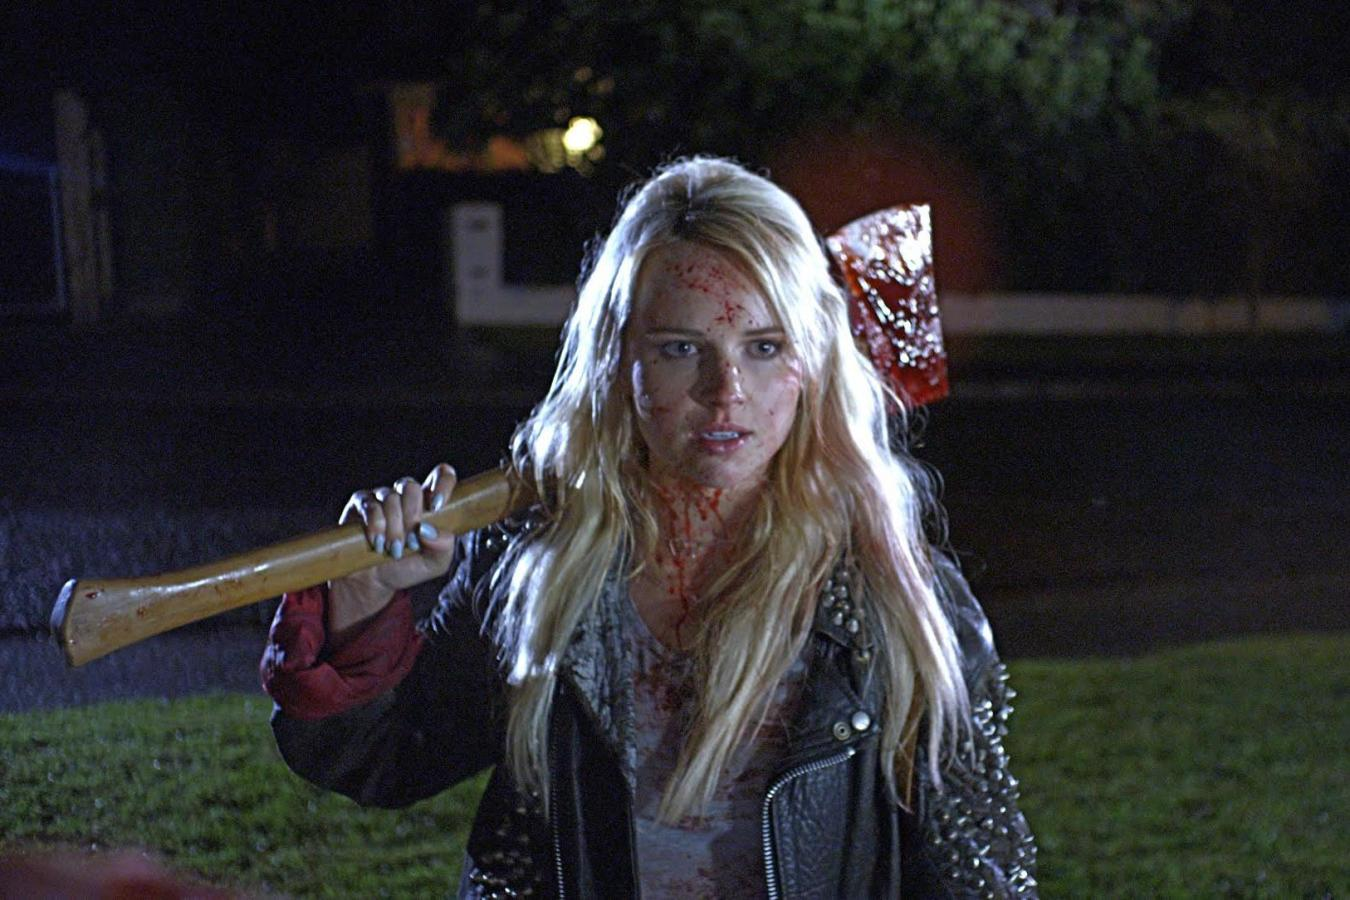 Kimberly Crossman wades in to fight demons in Deathgasm (2015)